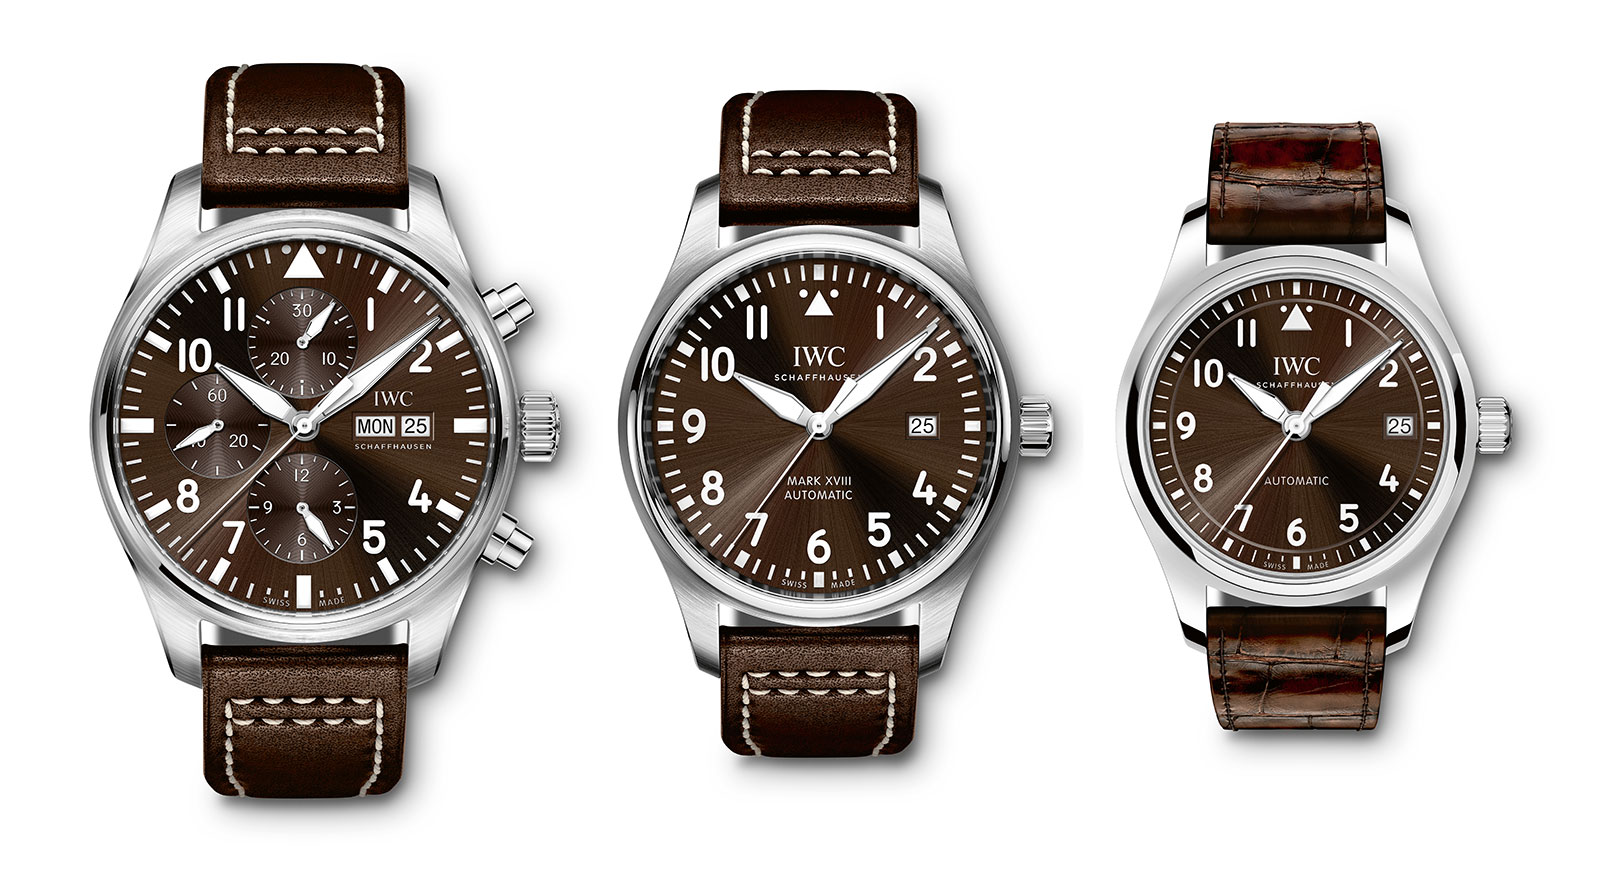 IWC Pilot's Saint Exupéry collection 1